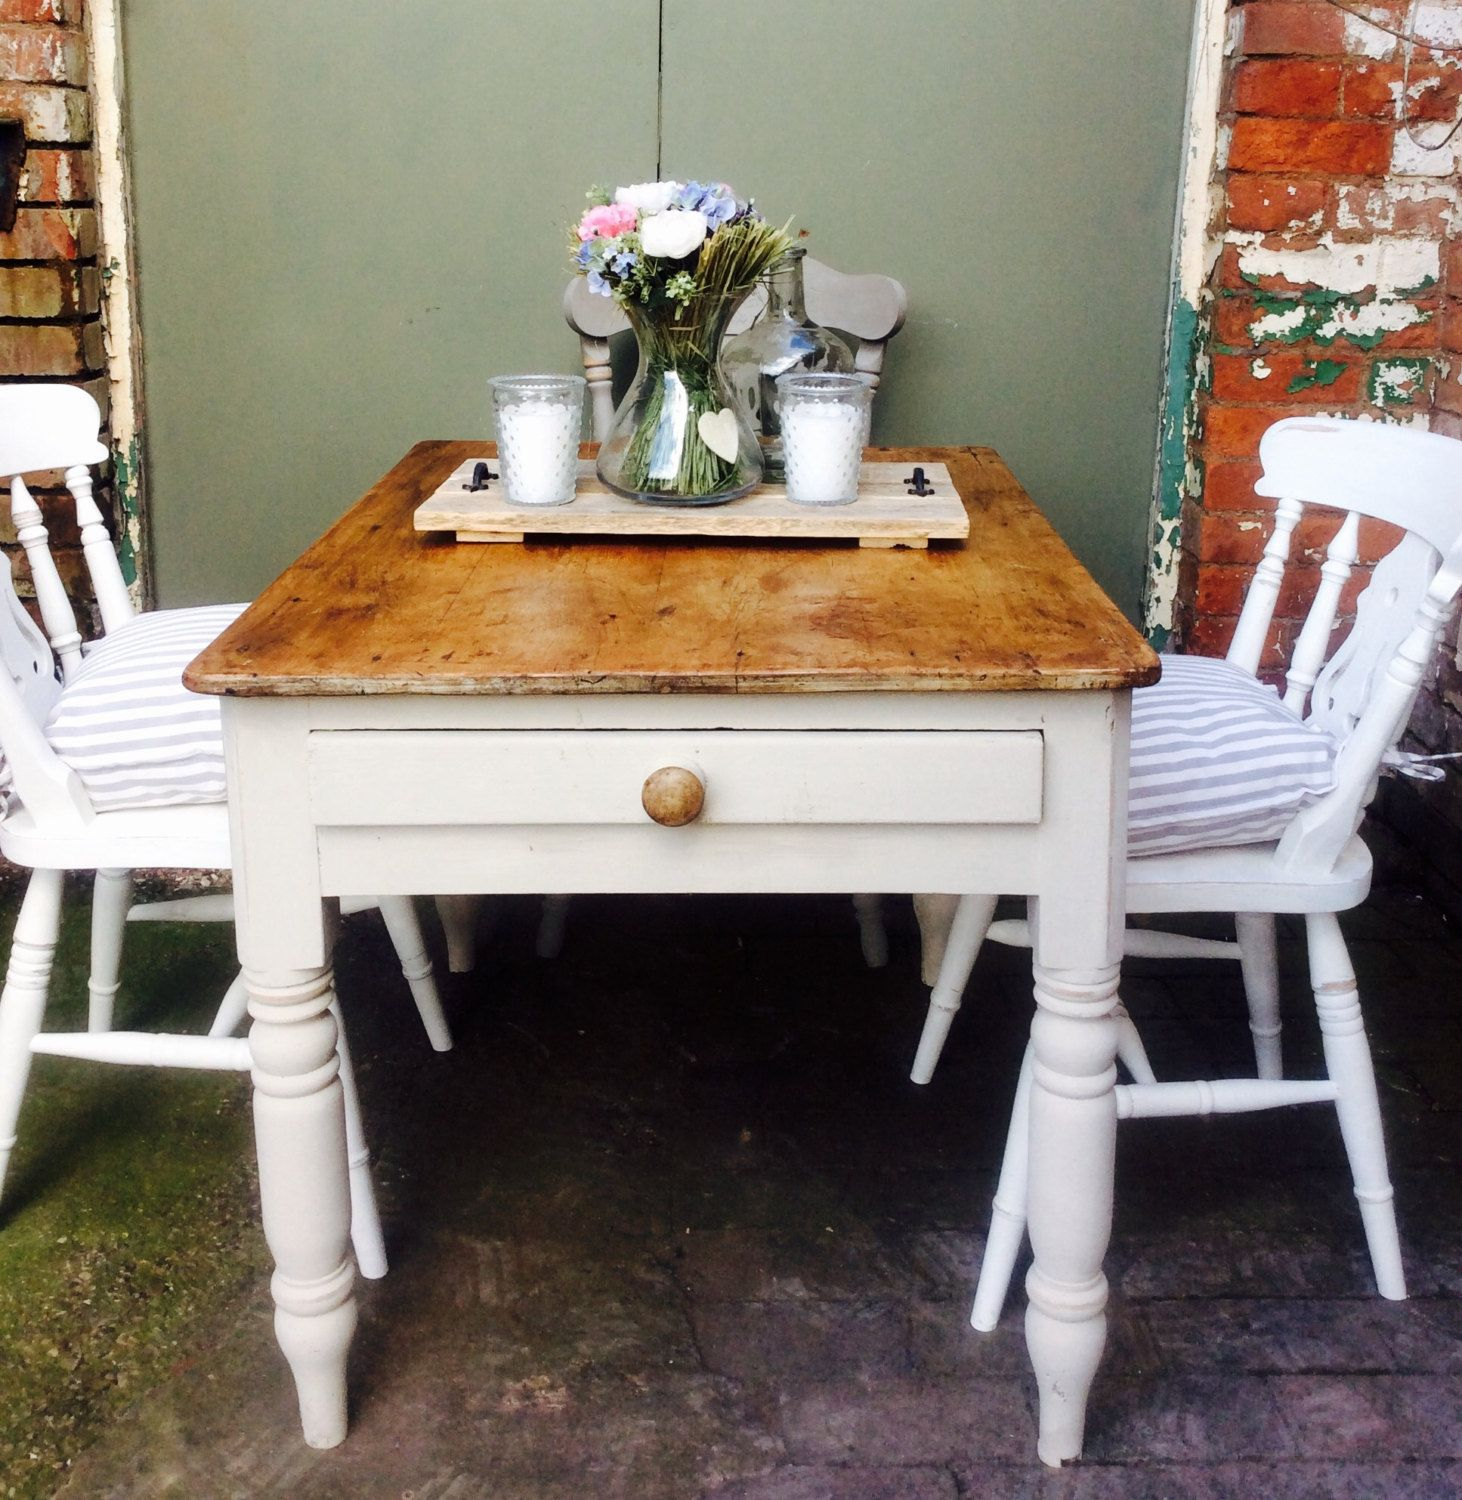 Gorgeous original antique barn find reclaimed country cream 4 ...